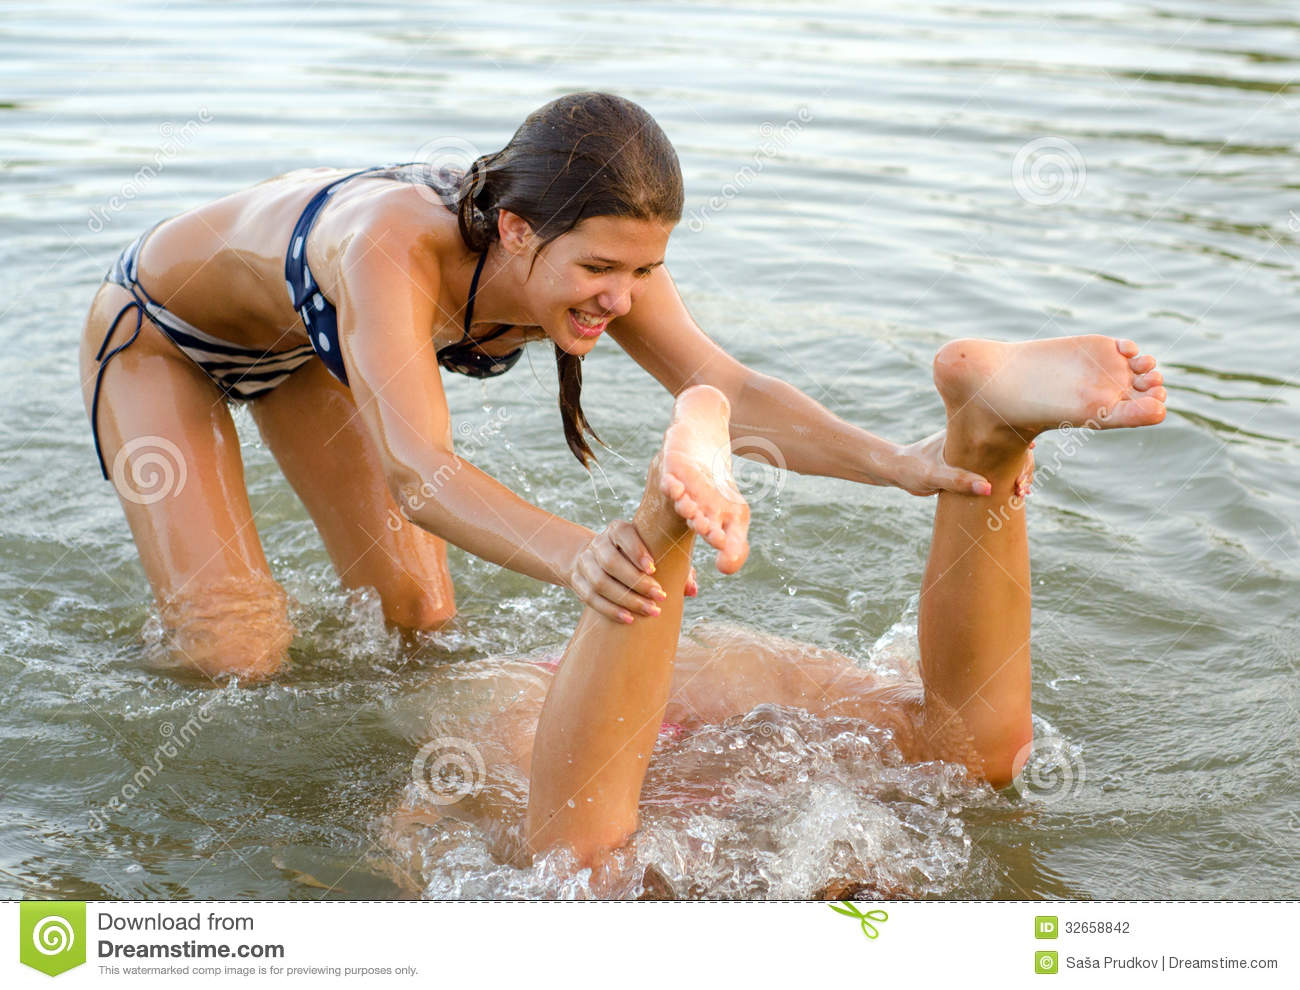 Teenage Girls Playing In The Water Stock Photo Image Of Optimistic Close